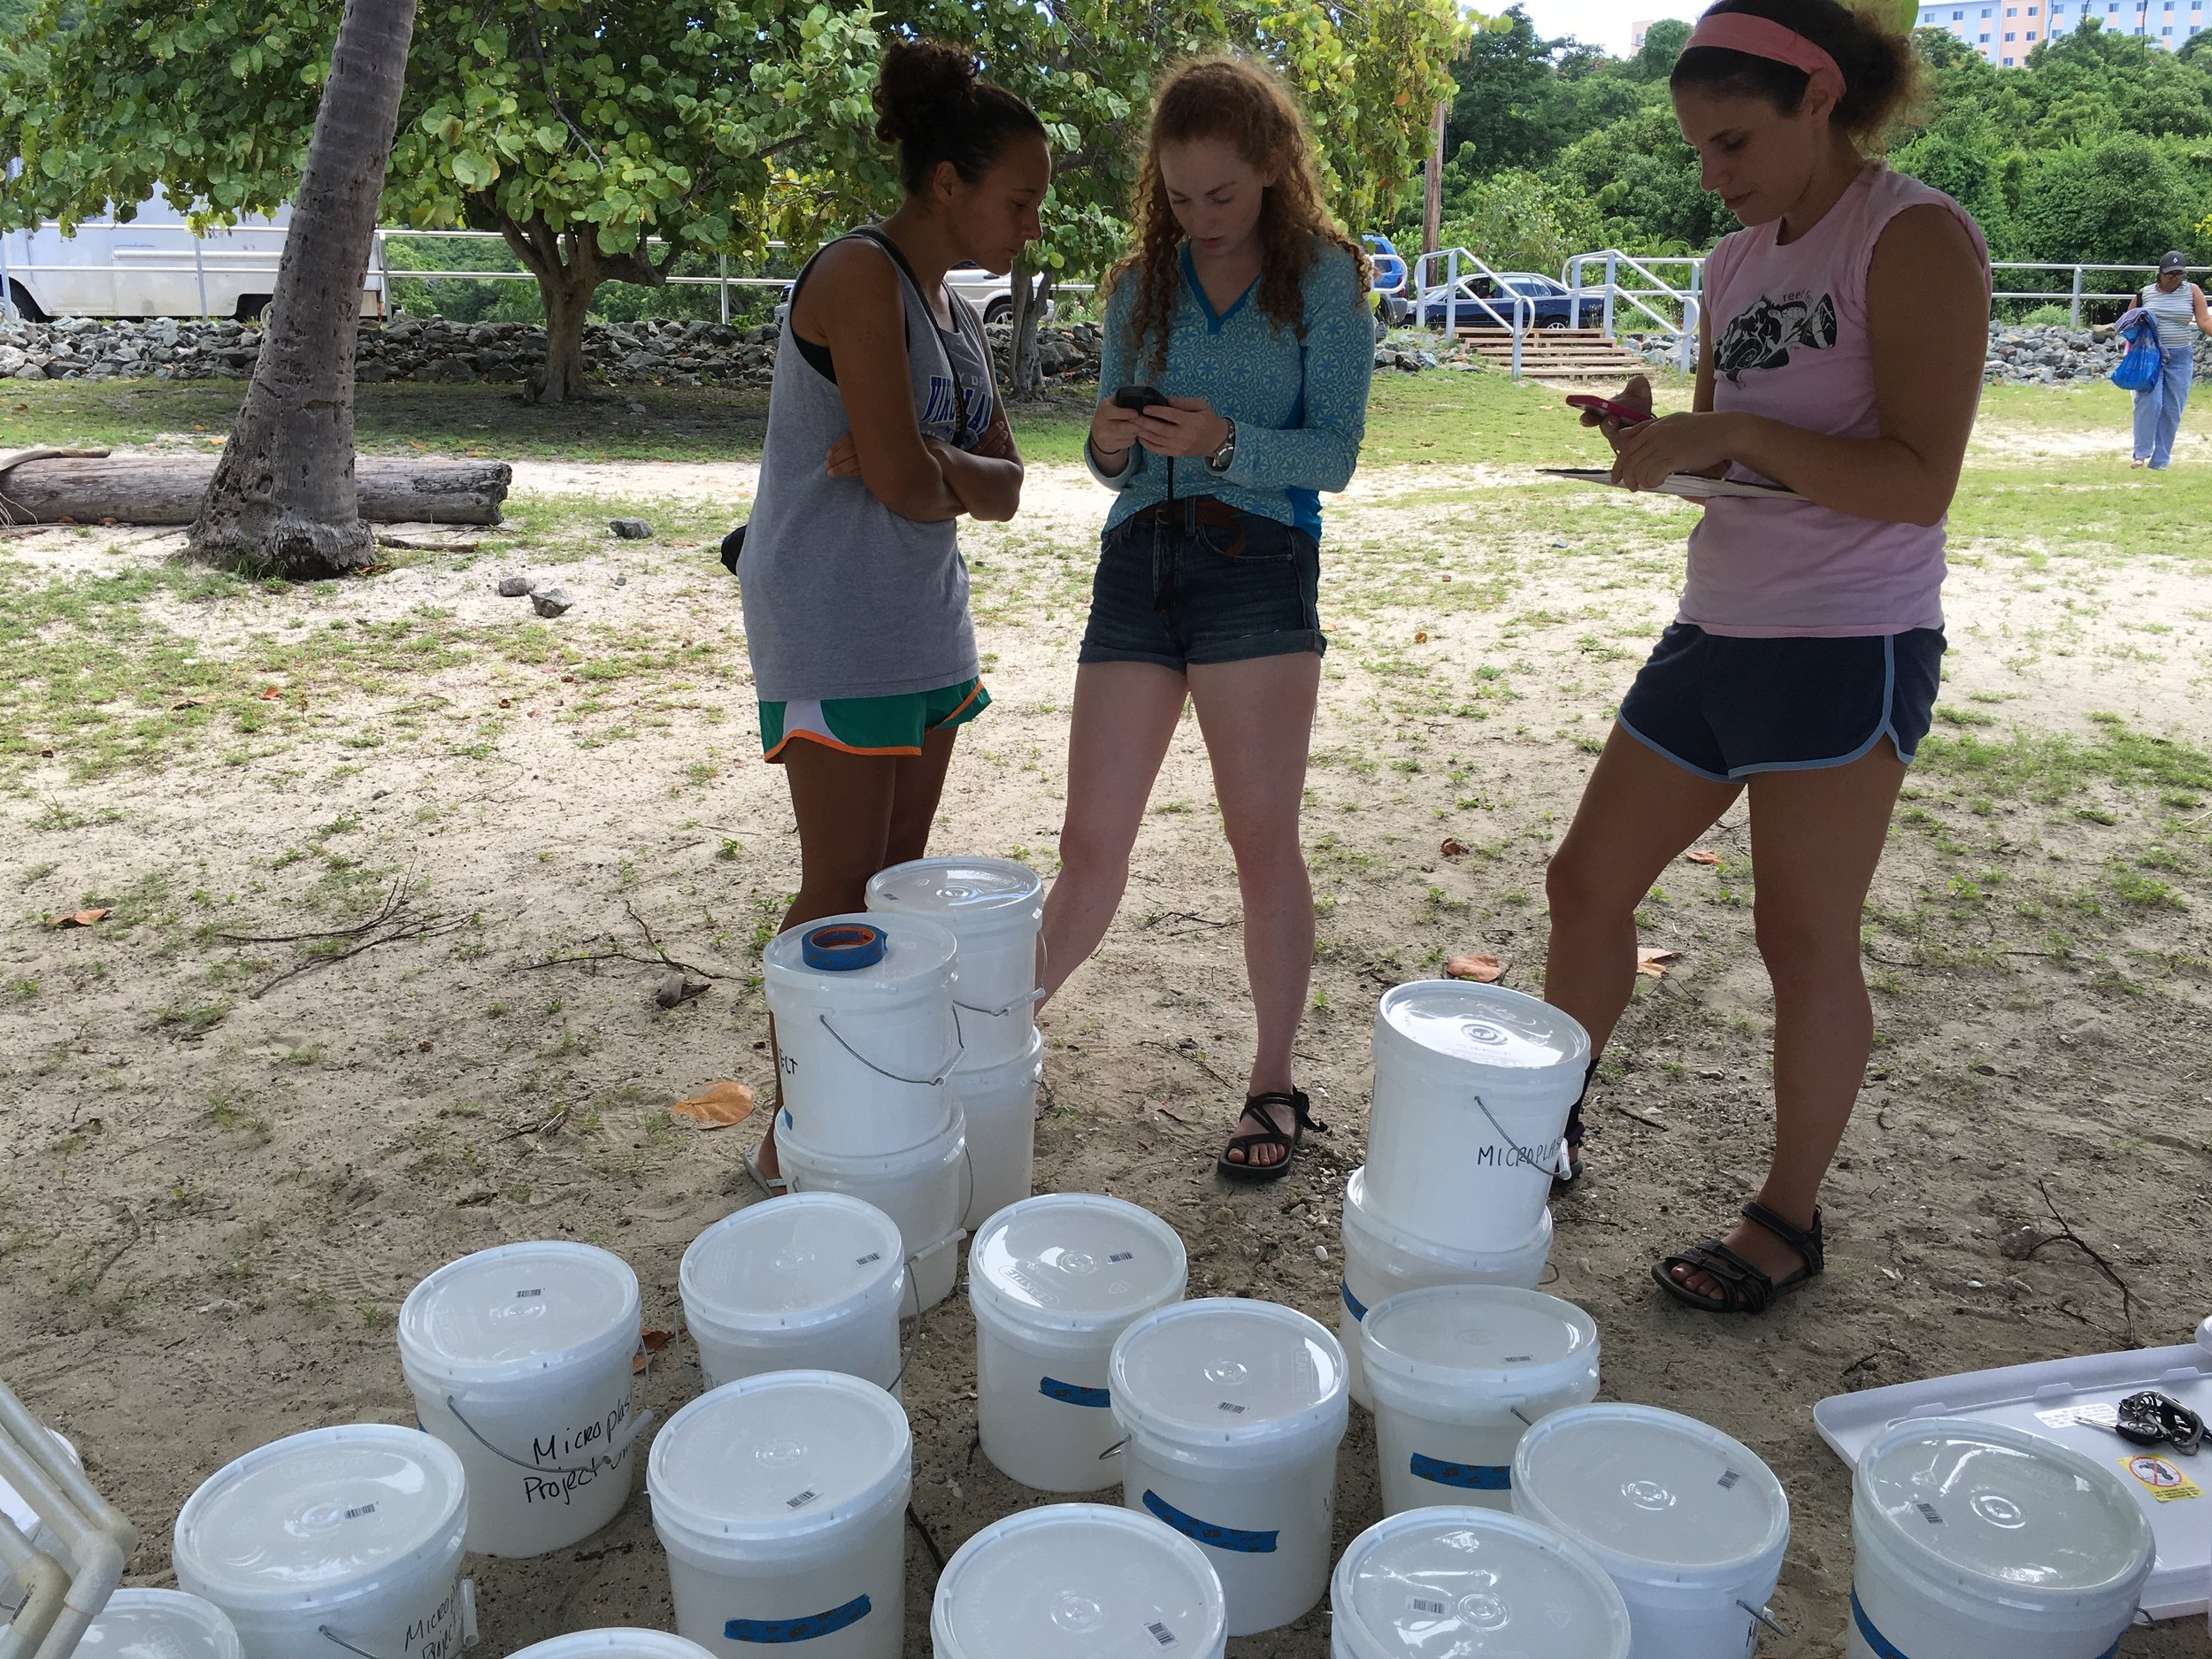 Danie (far right) and members of her team are prepping and organizing for sampling. The buckets are labeled with quadrant and transect number. At center is Allie Durdall, a UVI graduate student on St. Croix with a focus on the Salt Pond ecosystem and left, Mara Duke, who is quantifying zooplankton in Brewers Bay and the microplastics found in the zooplankton samples.